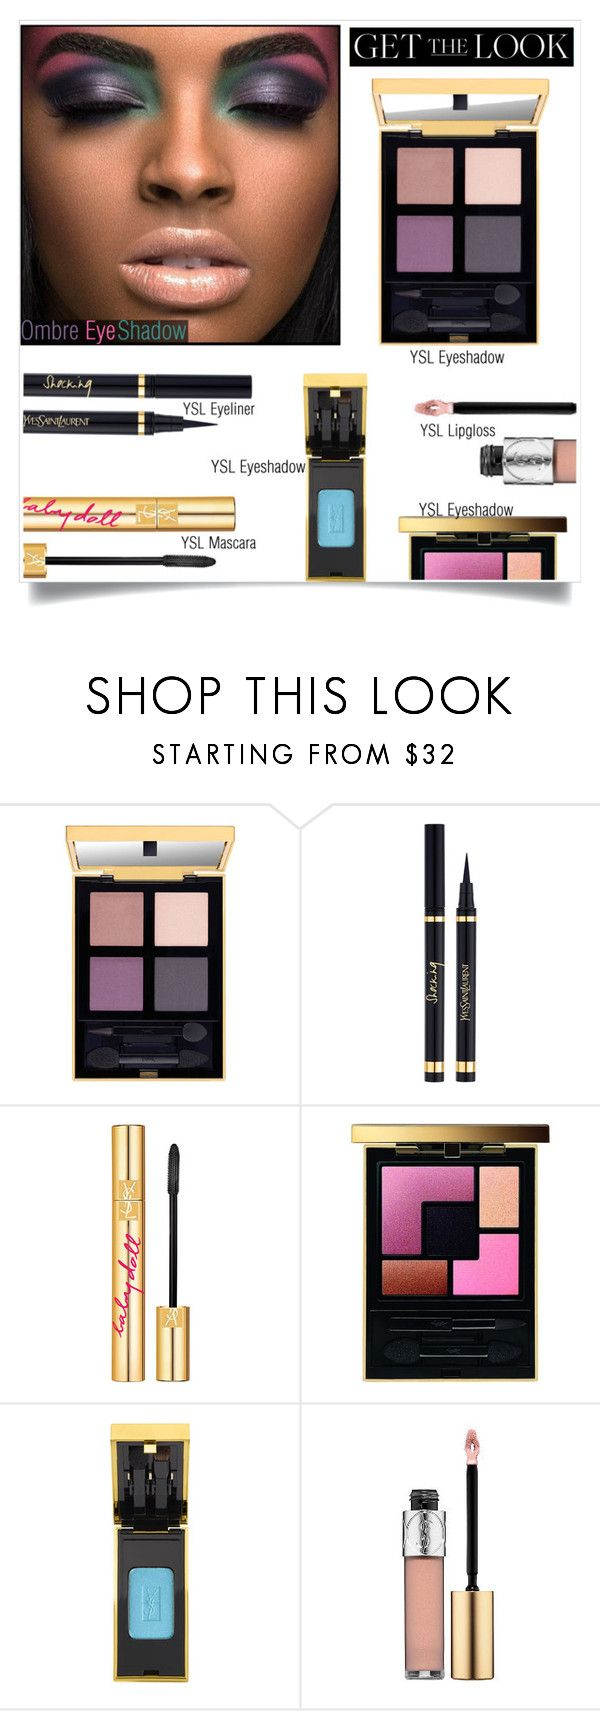 """Get The Look: Ombre Eye Shadow 2"" by melindairenes ❤ liked on Polyvore featuring beauty, PUR, Yves Saint Laurent, ombreeyes, thanksdarling, thanksweetpolyfriends, blessyouall, thankslovelies and Sorryforthelatereply"